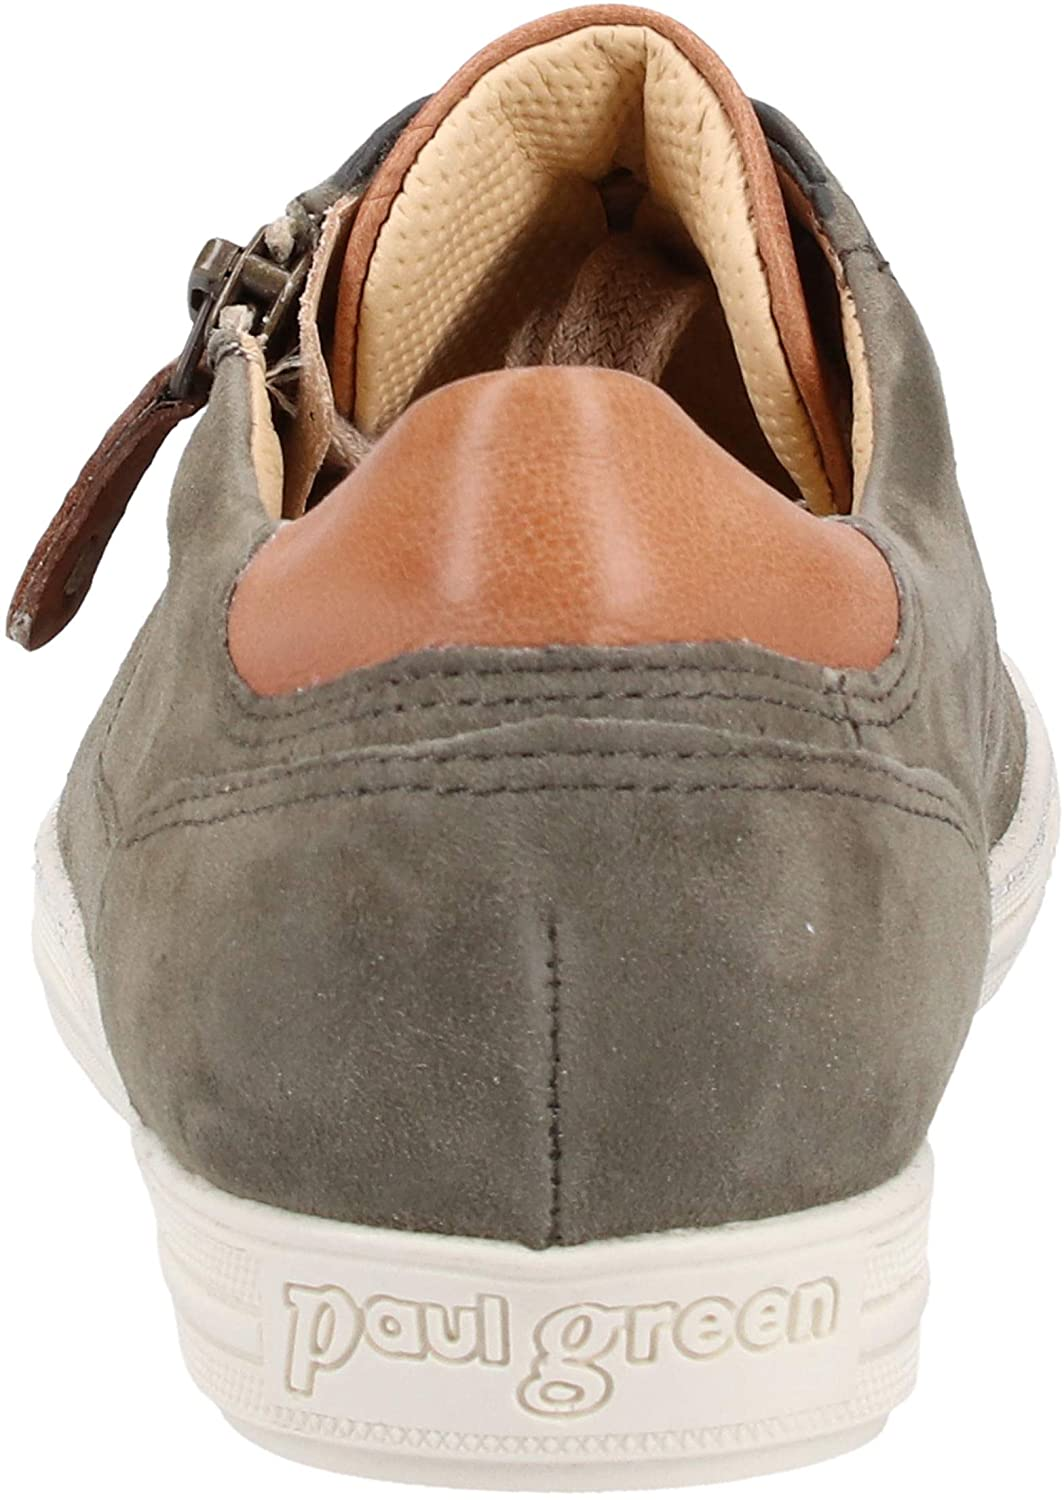 Paul Green Sneaker Olive